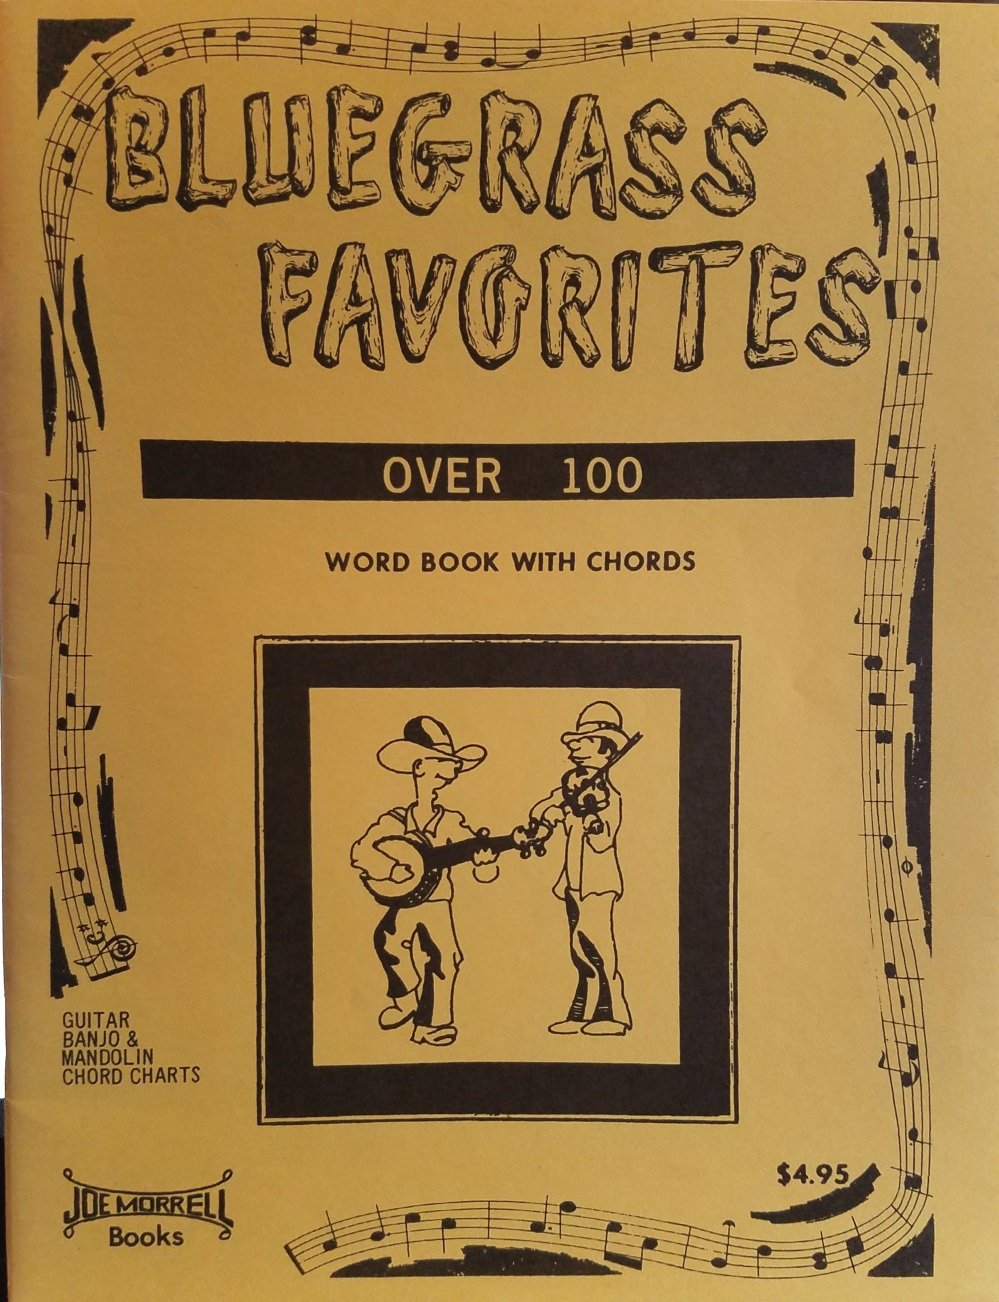 Bluegrass Favorites Over 100 Word Book With Chords Guitar Banjo